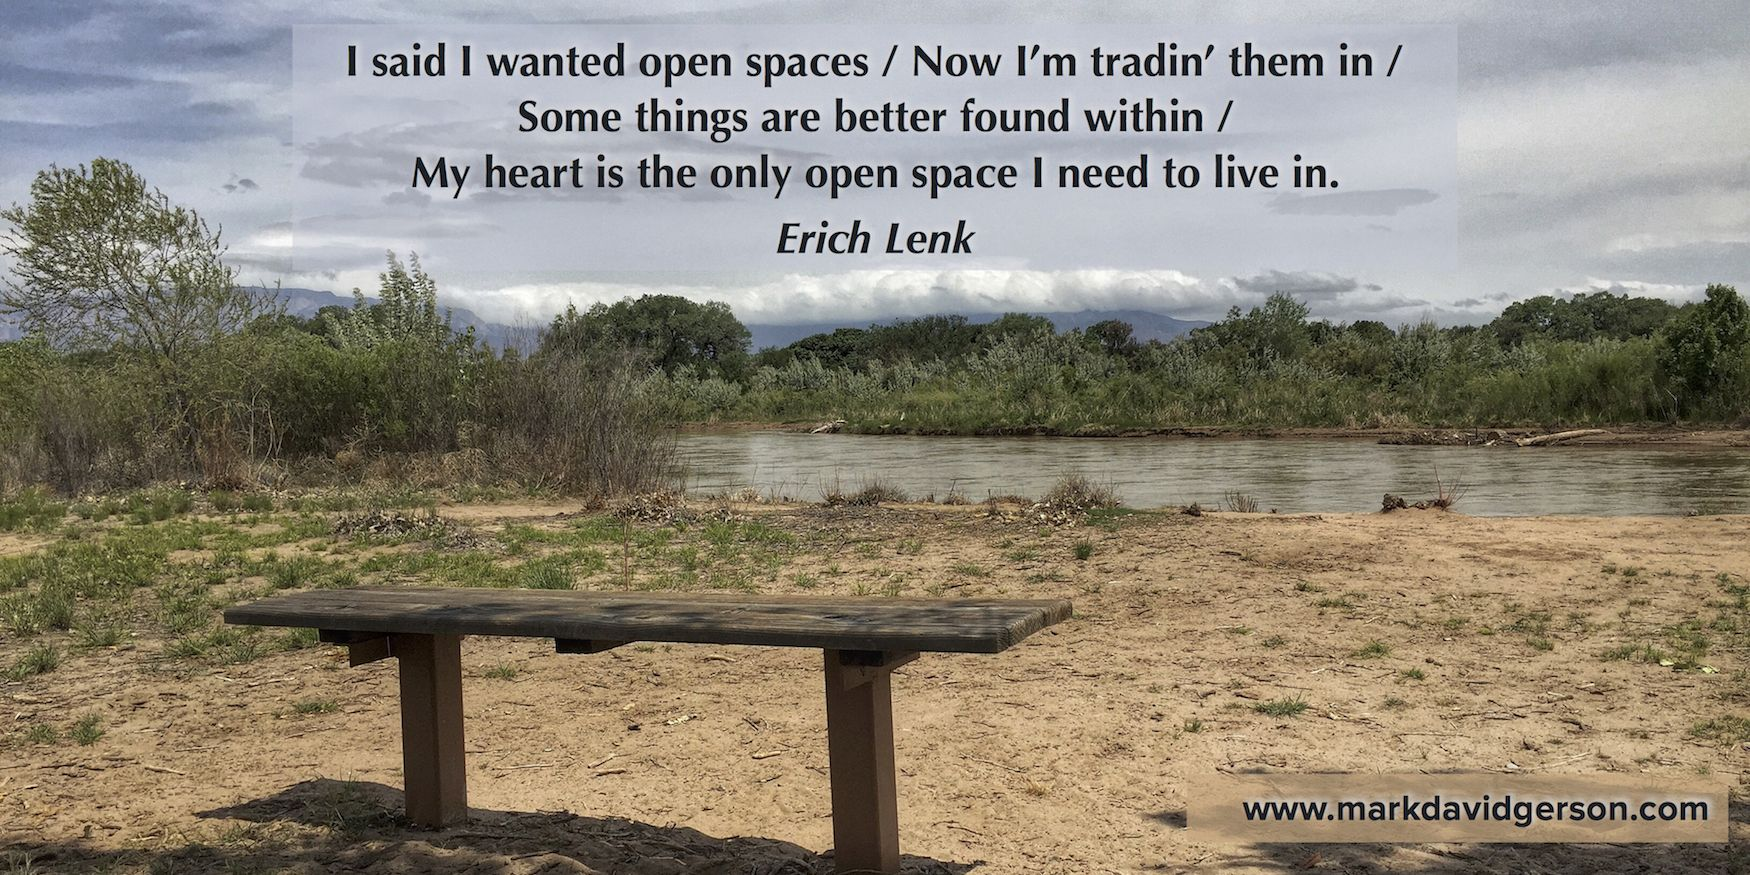 This song lyric changed my life when singer/songwriter Erich Lenk pulled out his guitar and sang it for me at Ojai's Meditation Mount. Why was I in Ojai and how did my life change? Find out in Acts of Surrender: A Writer's Memoir! • http://www.markdavidgerson.com/books/actsofsurrender